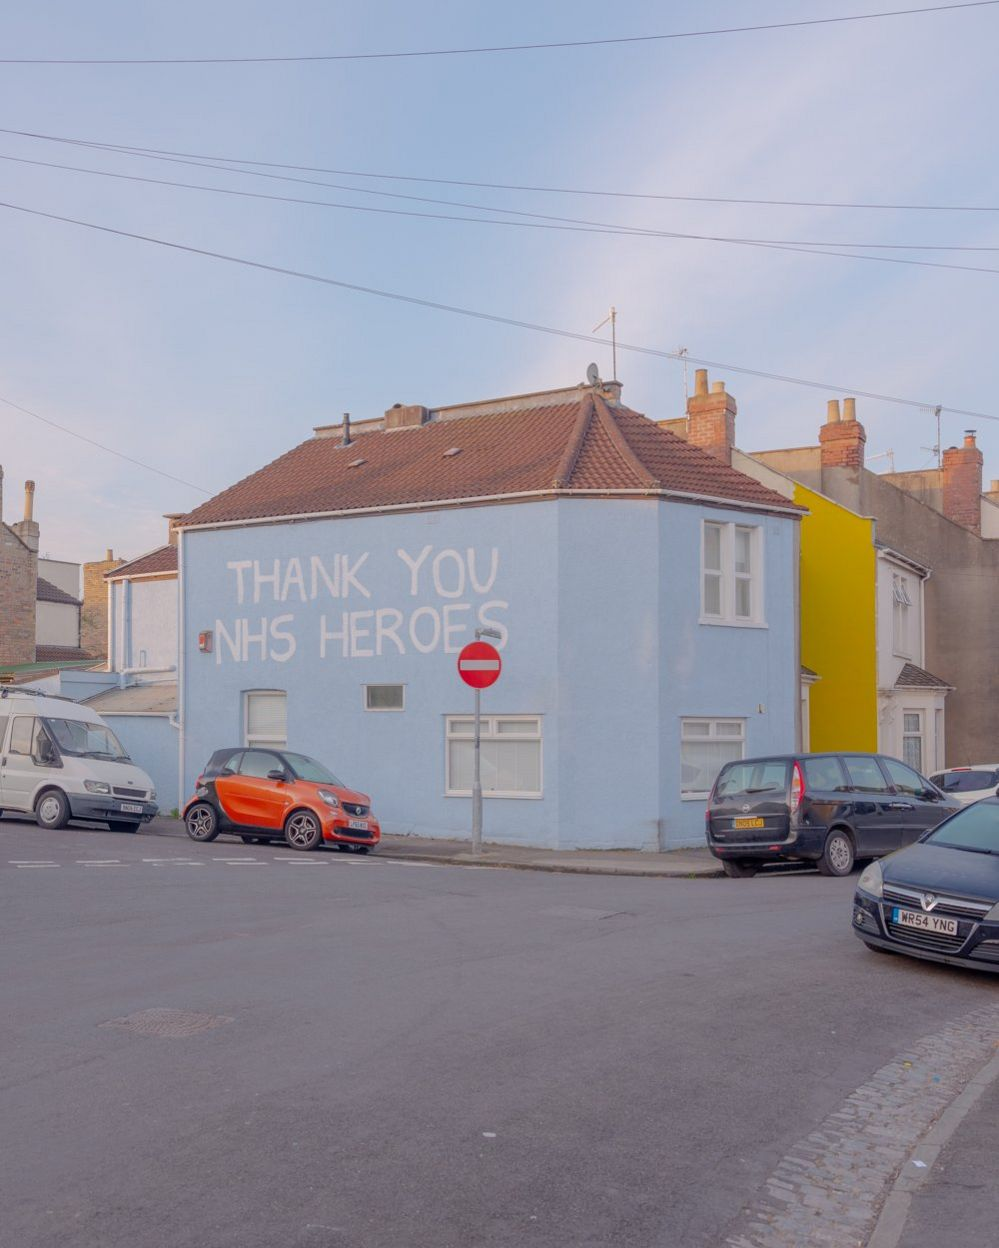 NHS Mural on a house